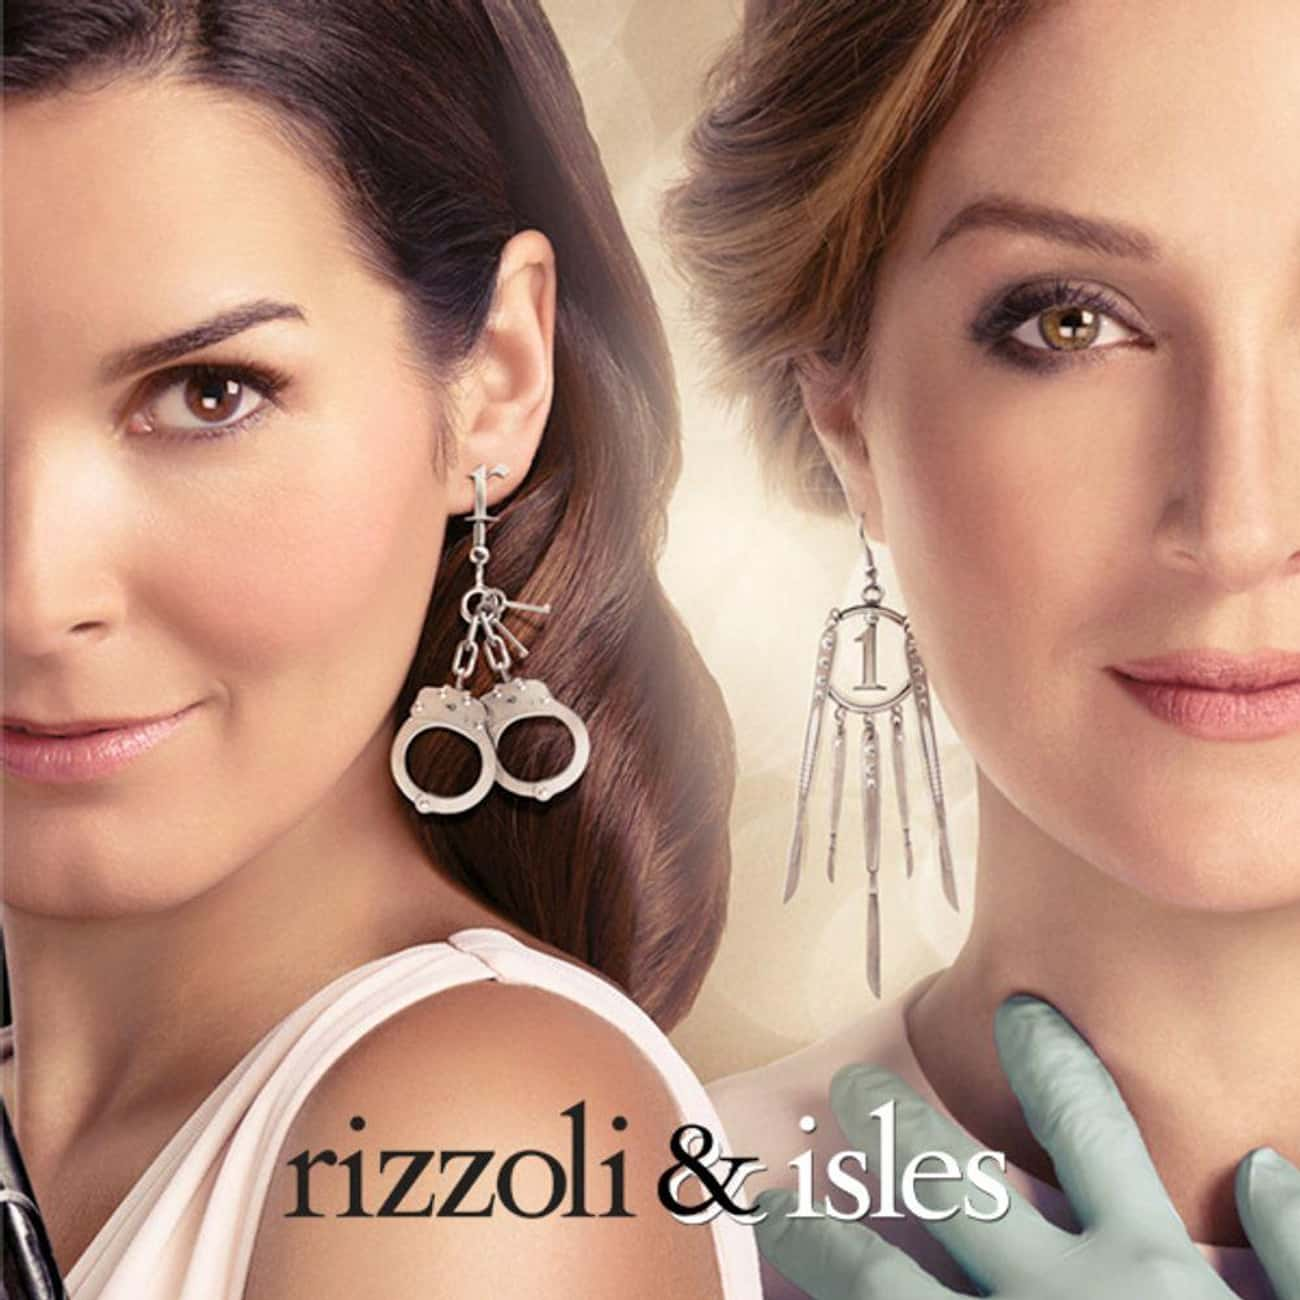 Rizzoli & Isles is listed (or ranked) 2 on the list The Best Hulu TV Shows